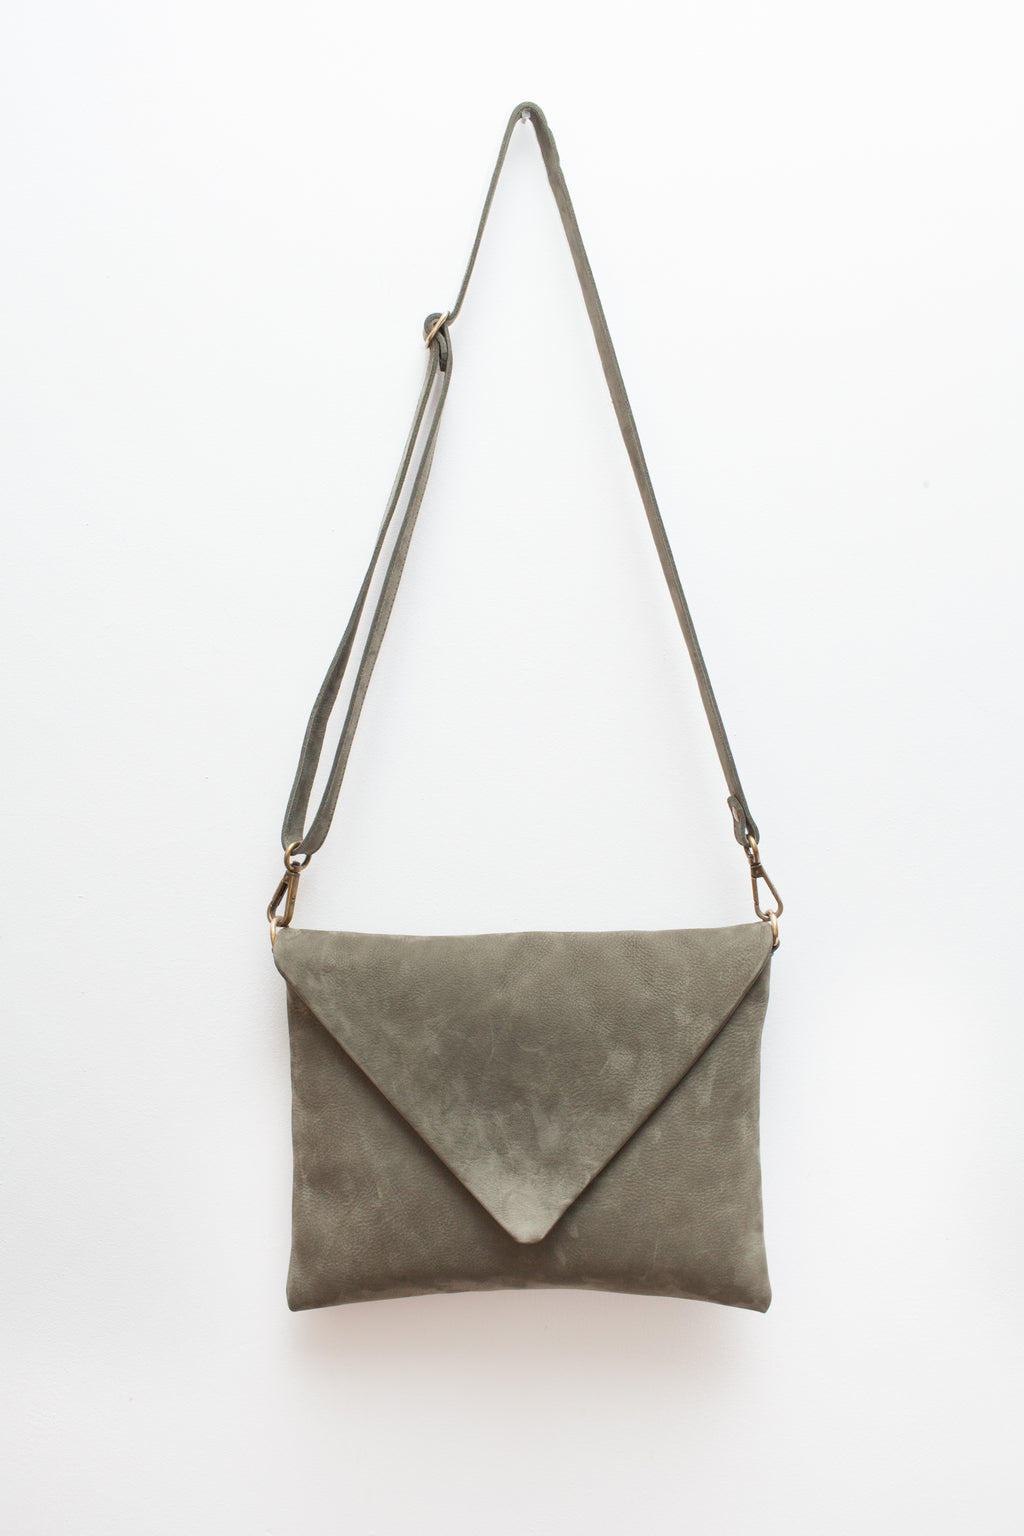 The Envelope Bag Eucalyptus Green